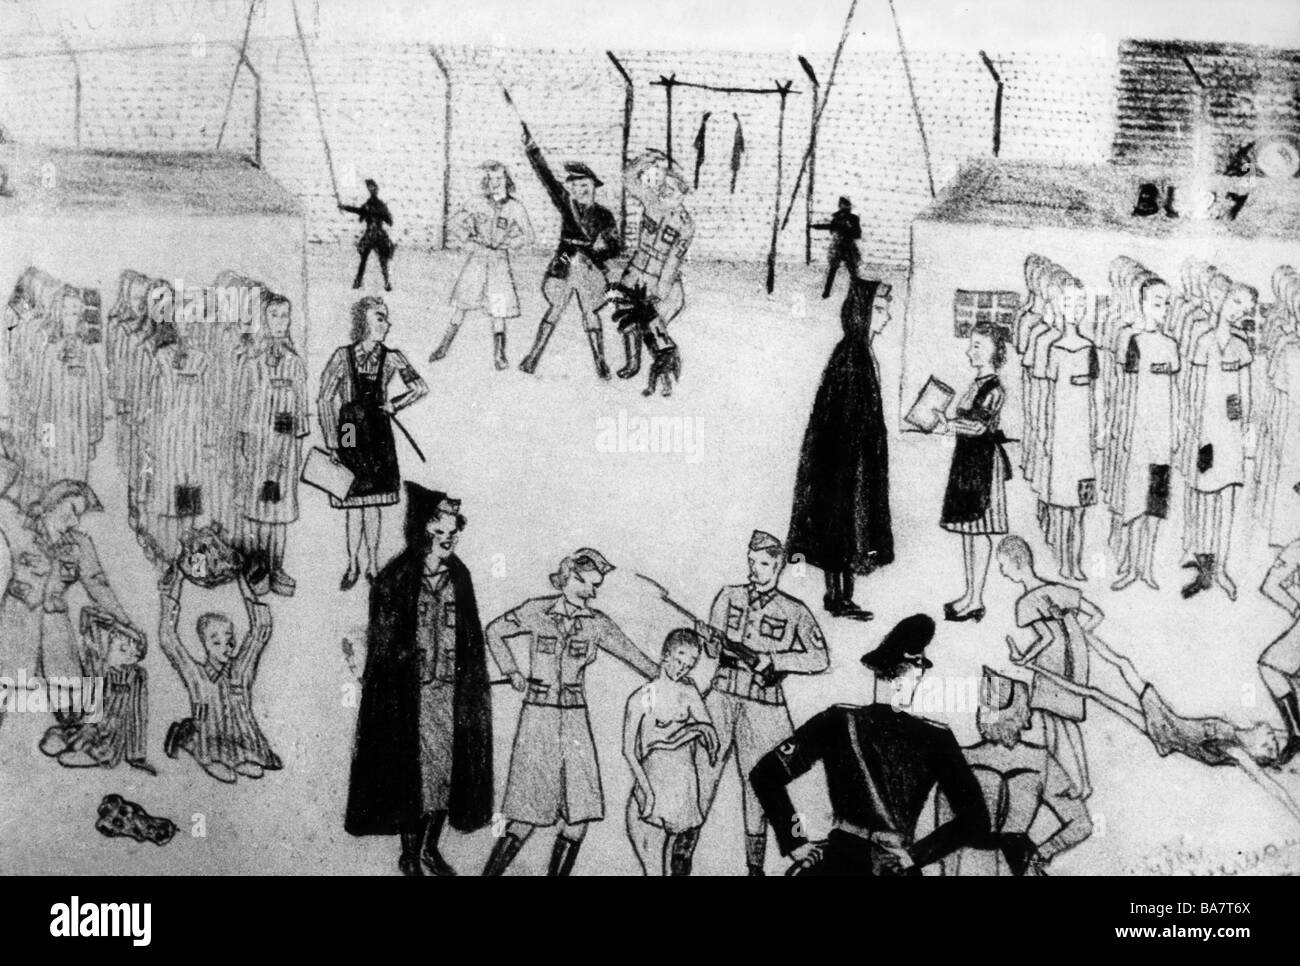 Nazism / National Socialism, crimes, concentration camps, Auschwitz, Poland, mistreatment of female prisoners, drawing - Stock Image